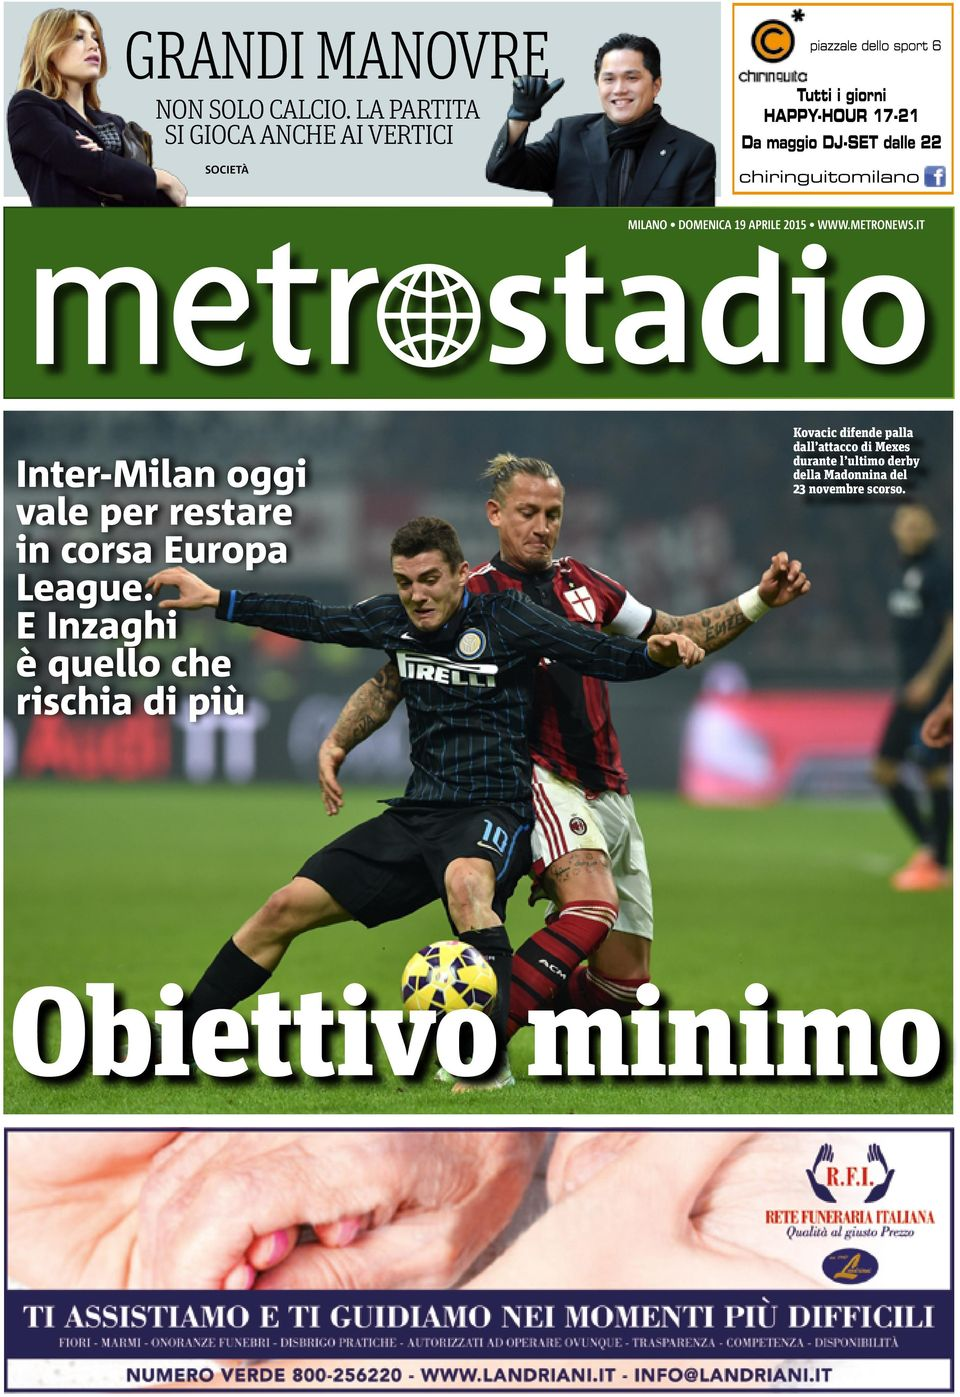 METRONEWS.IT Inter-Milan oggi vale per restare in corsa Europa League.